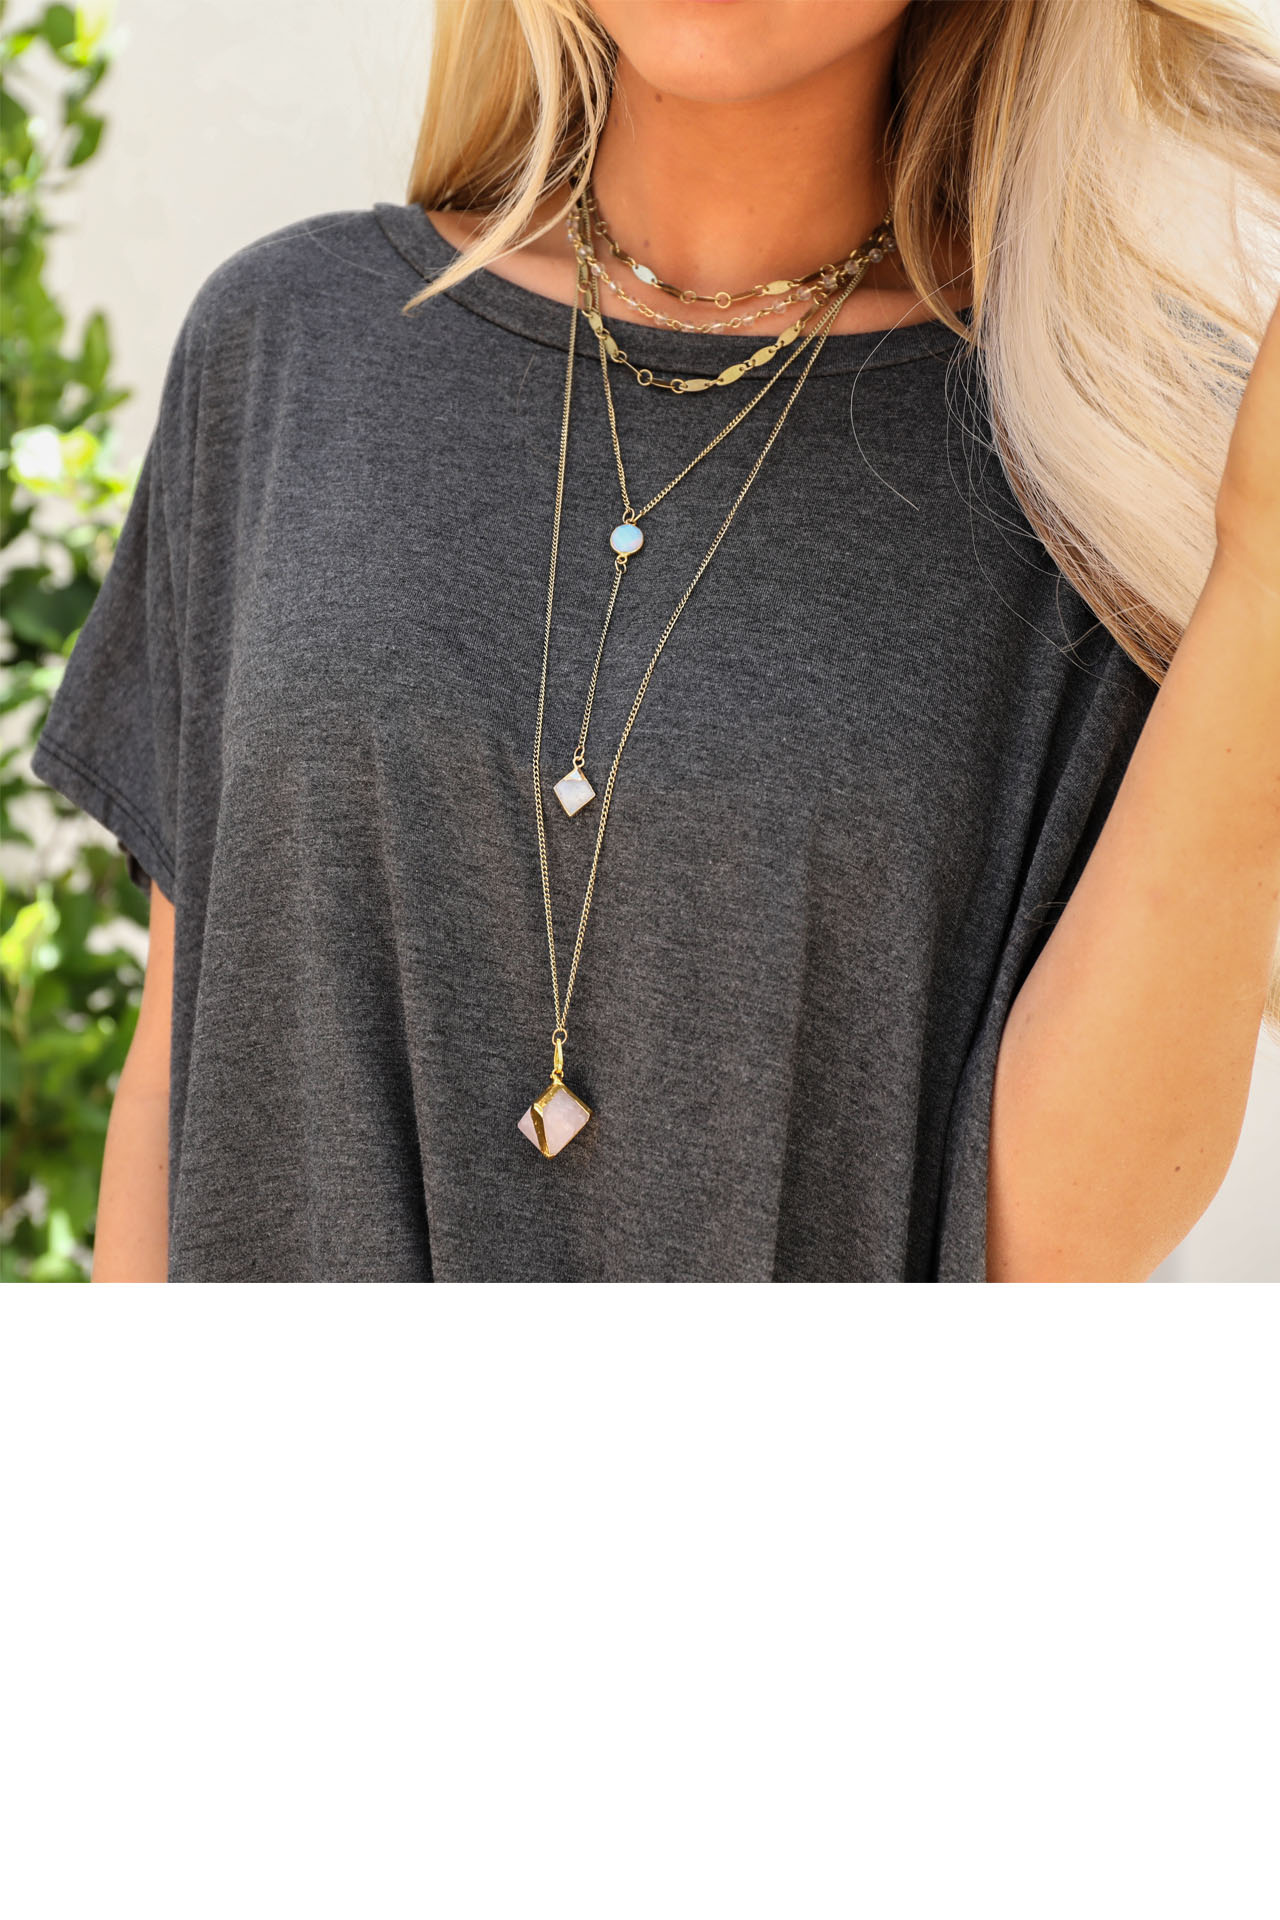 Antique Gold Layered Stone Necklace